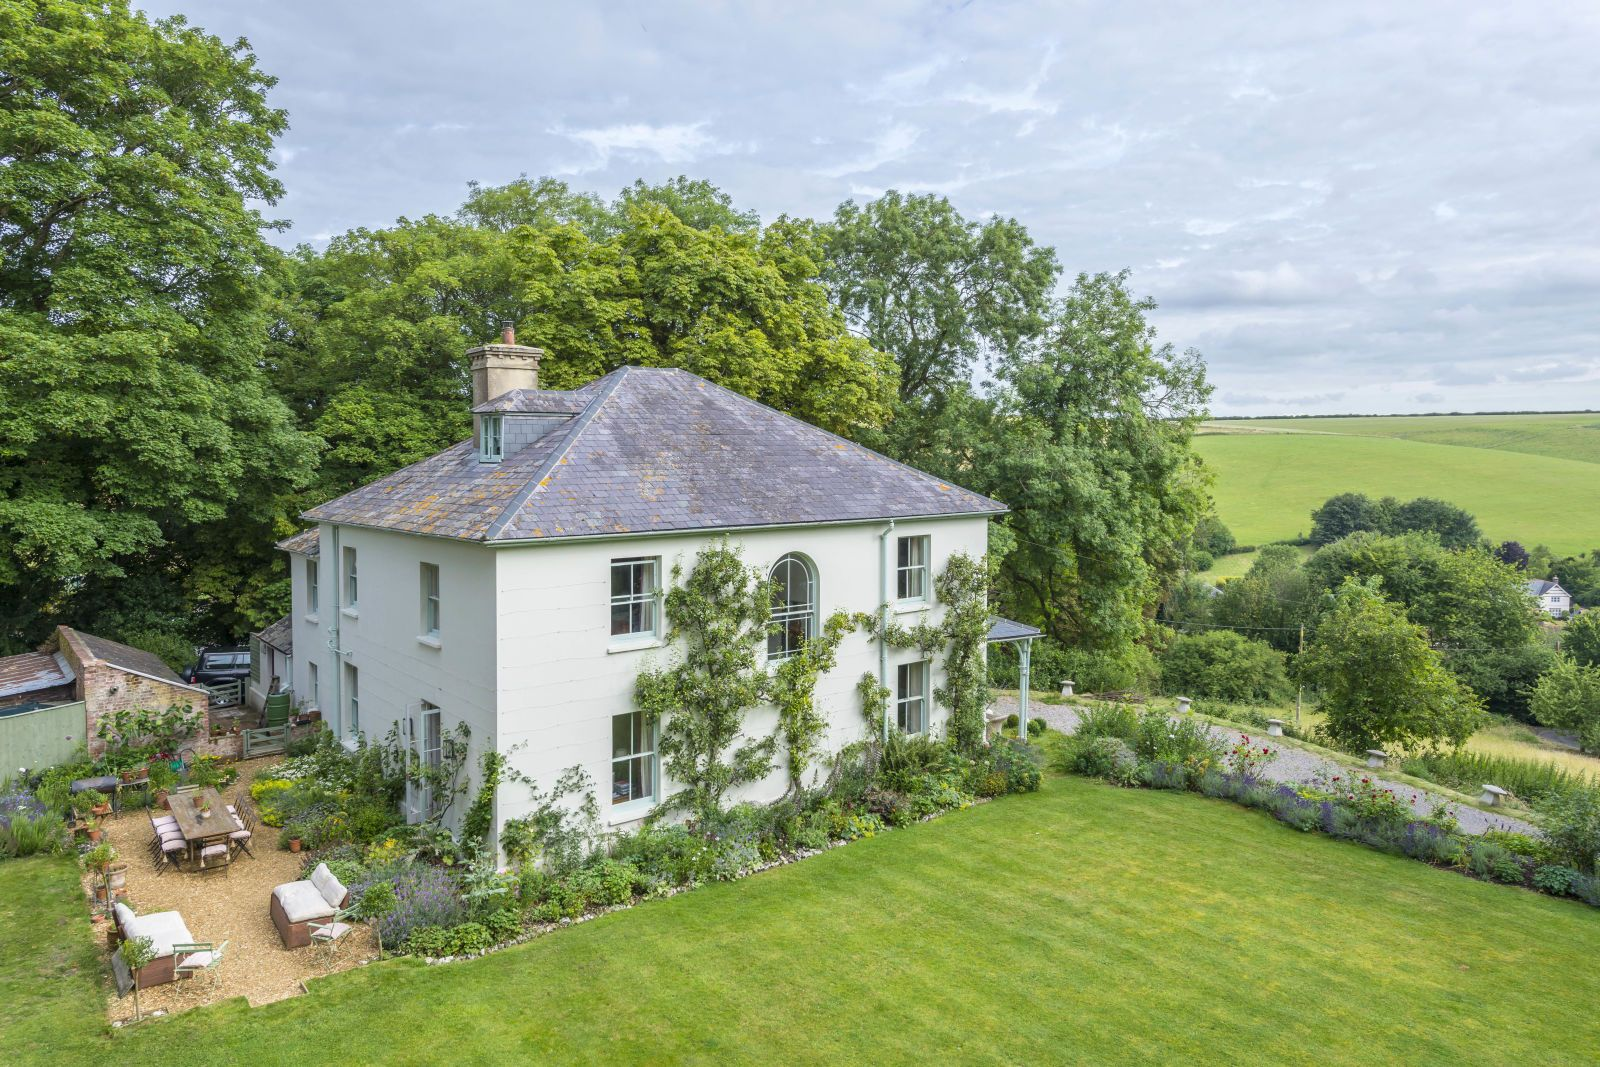 Book lovers will adore this former rectory for sale in Dorset ...